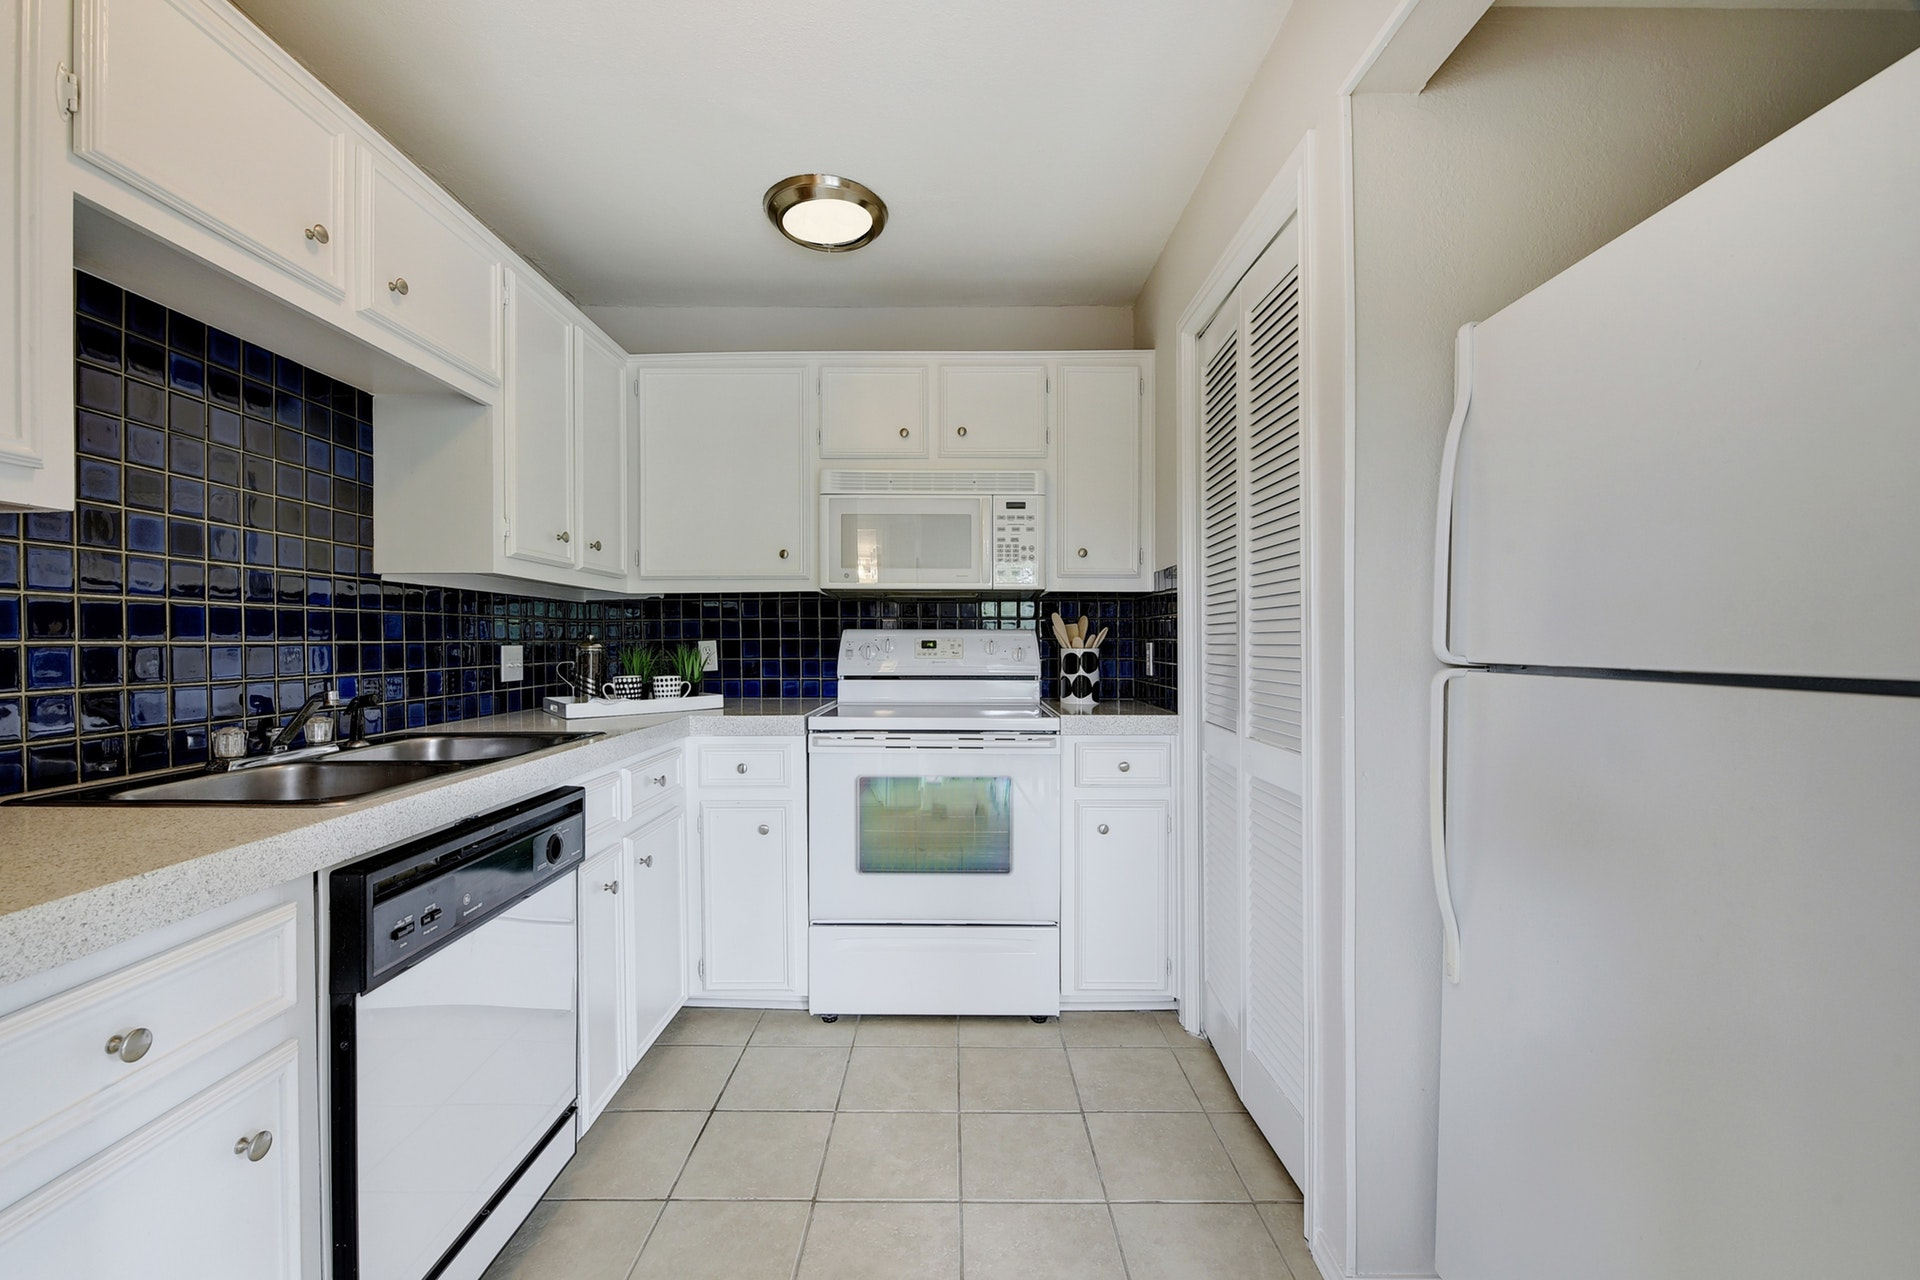 1500 Woodlawn - Kitchen 2